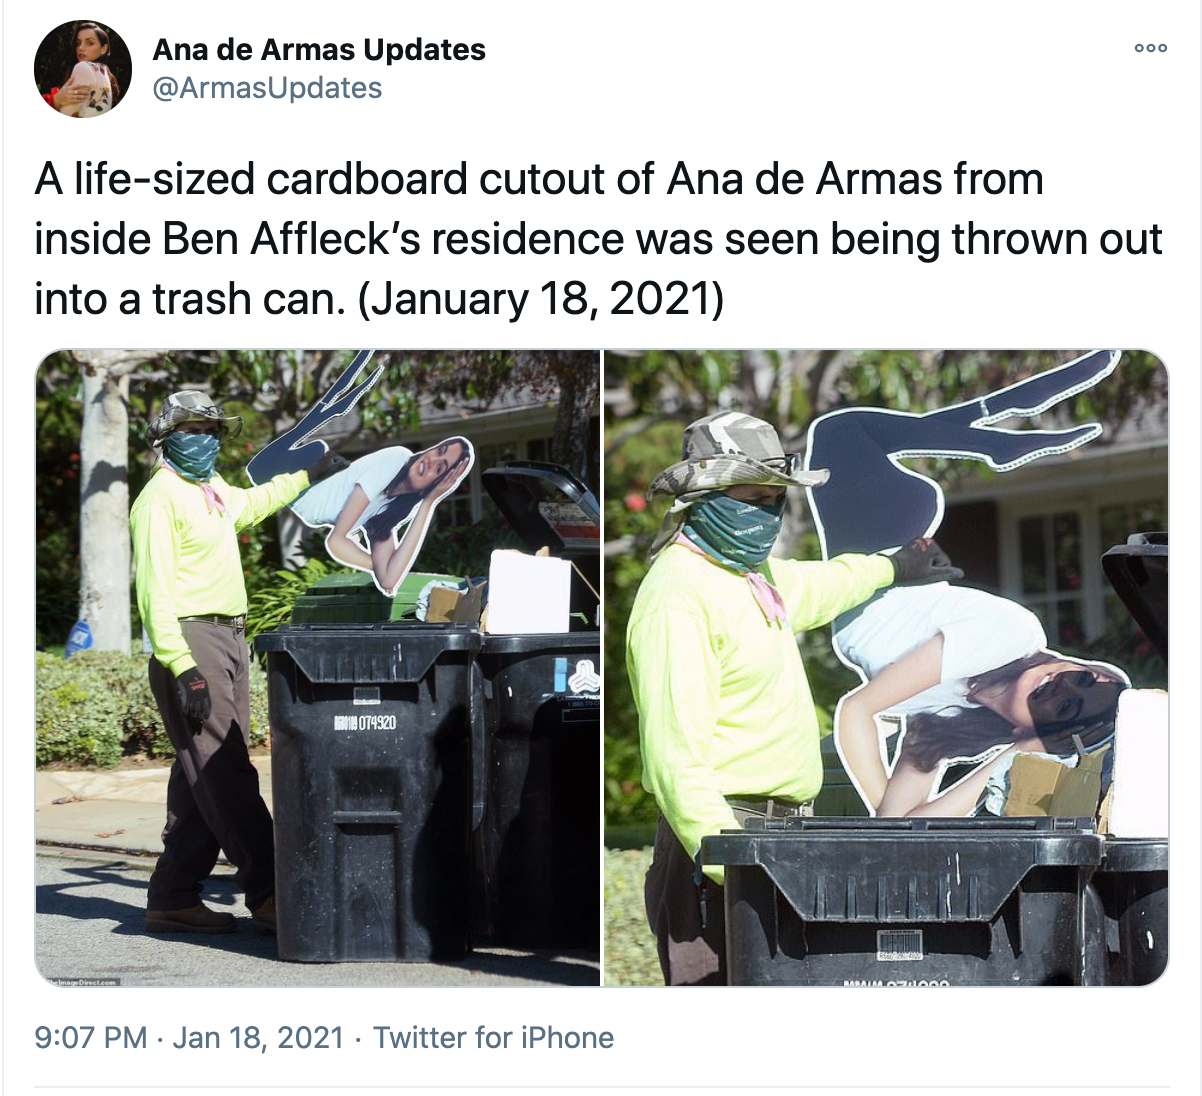 Pictures of SOMEONE (Casey Affleck???) throwing away a life size cutout of Ana de Armas